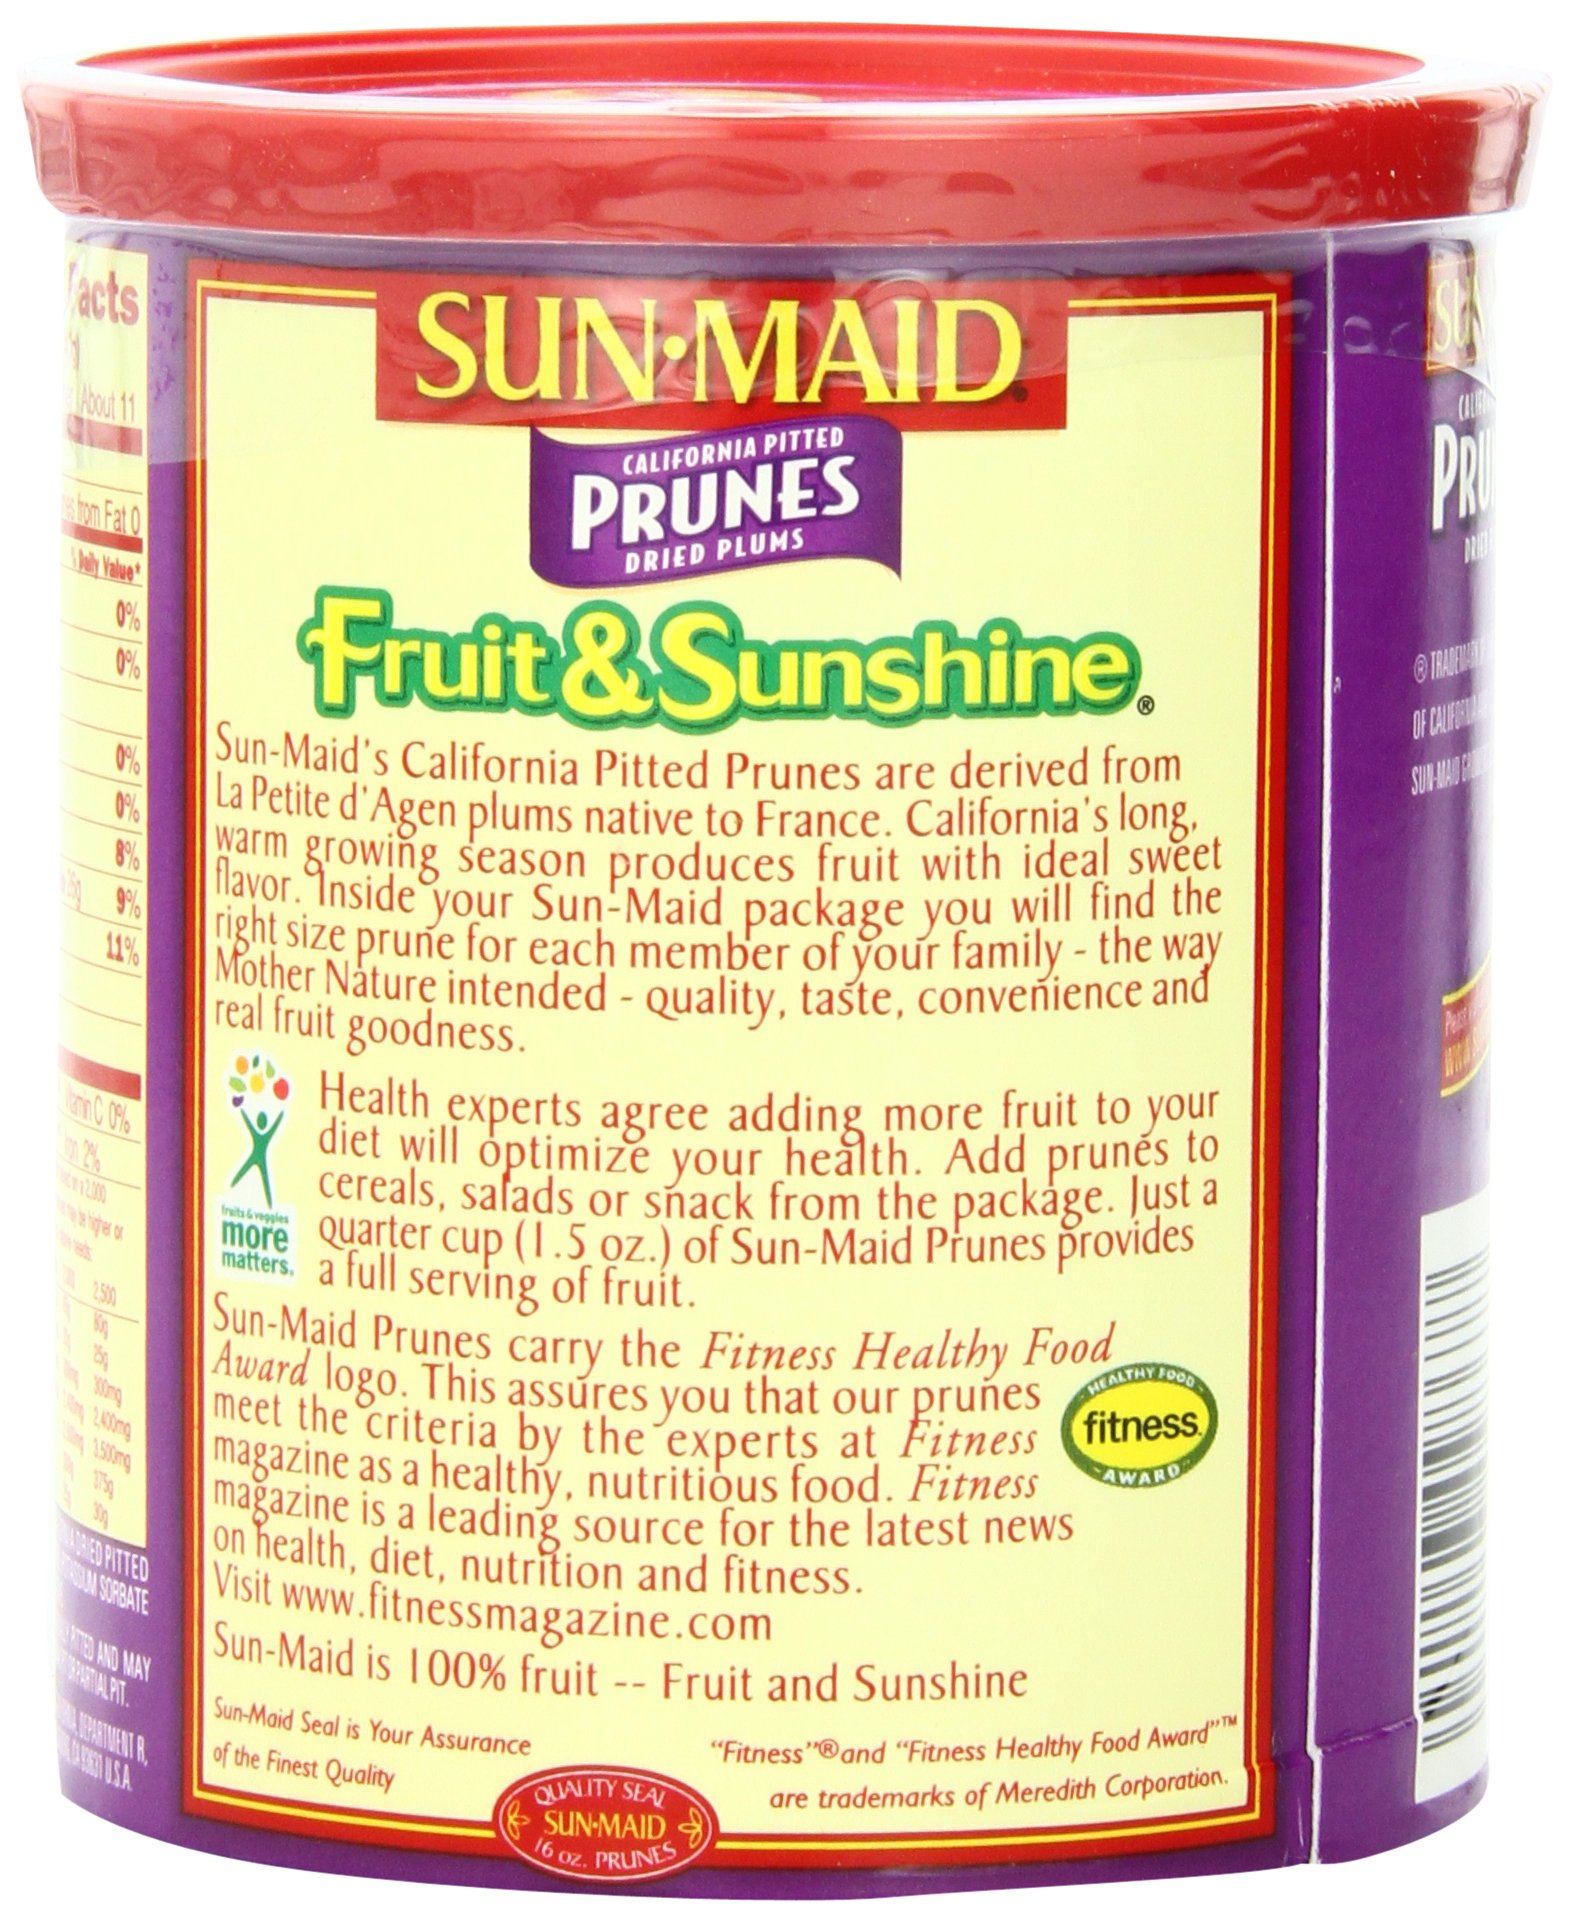 Sun Maid California Pitted Prunes, 16-Ounce Canisters (Pack of 4) by Sun Maid (Image #4)